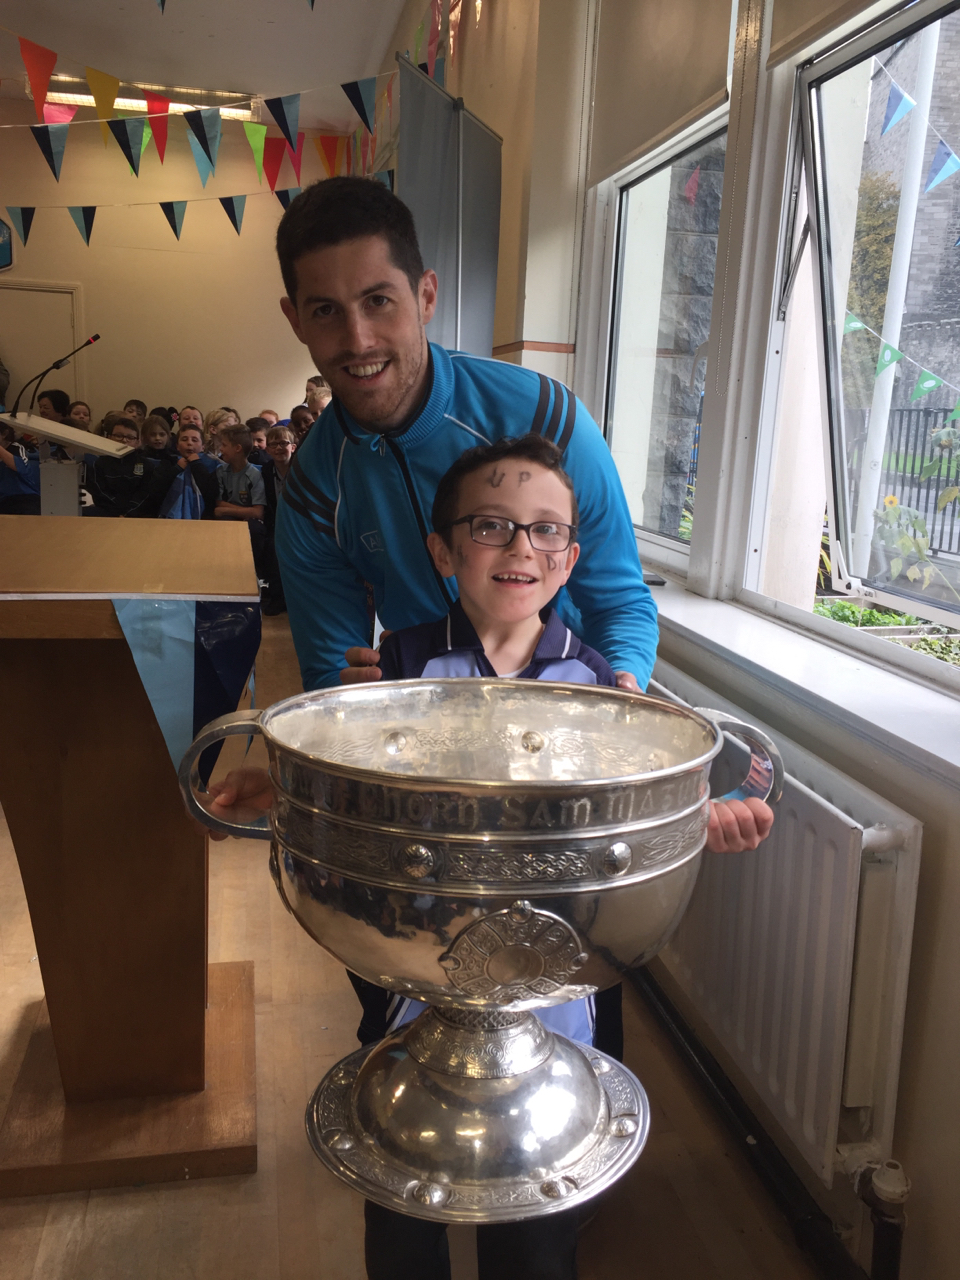 The Sam Maguire Visit 2015!